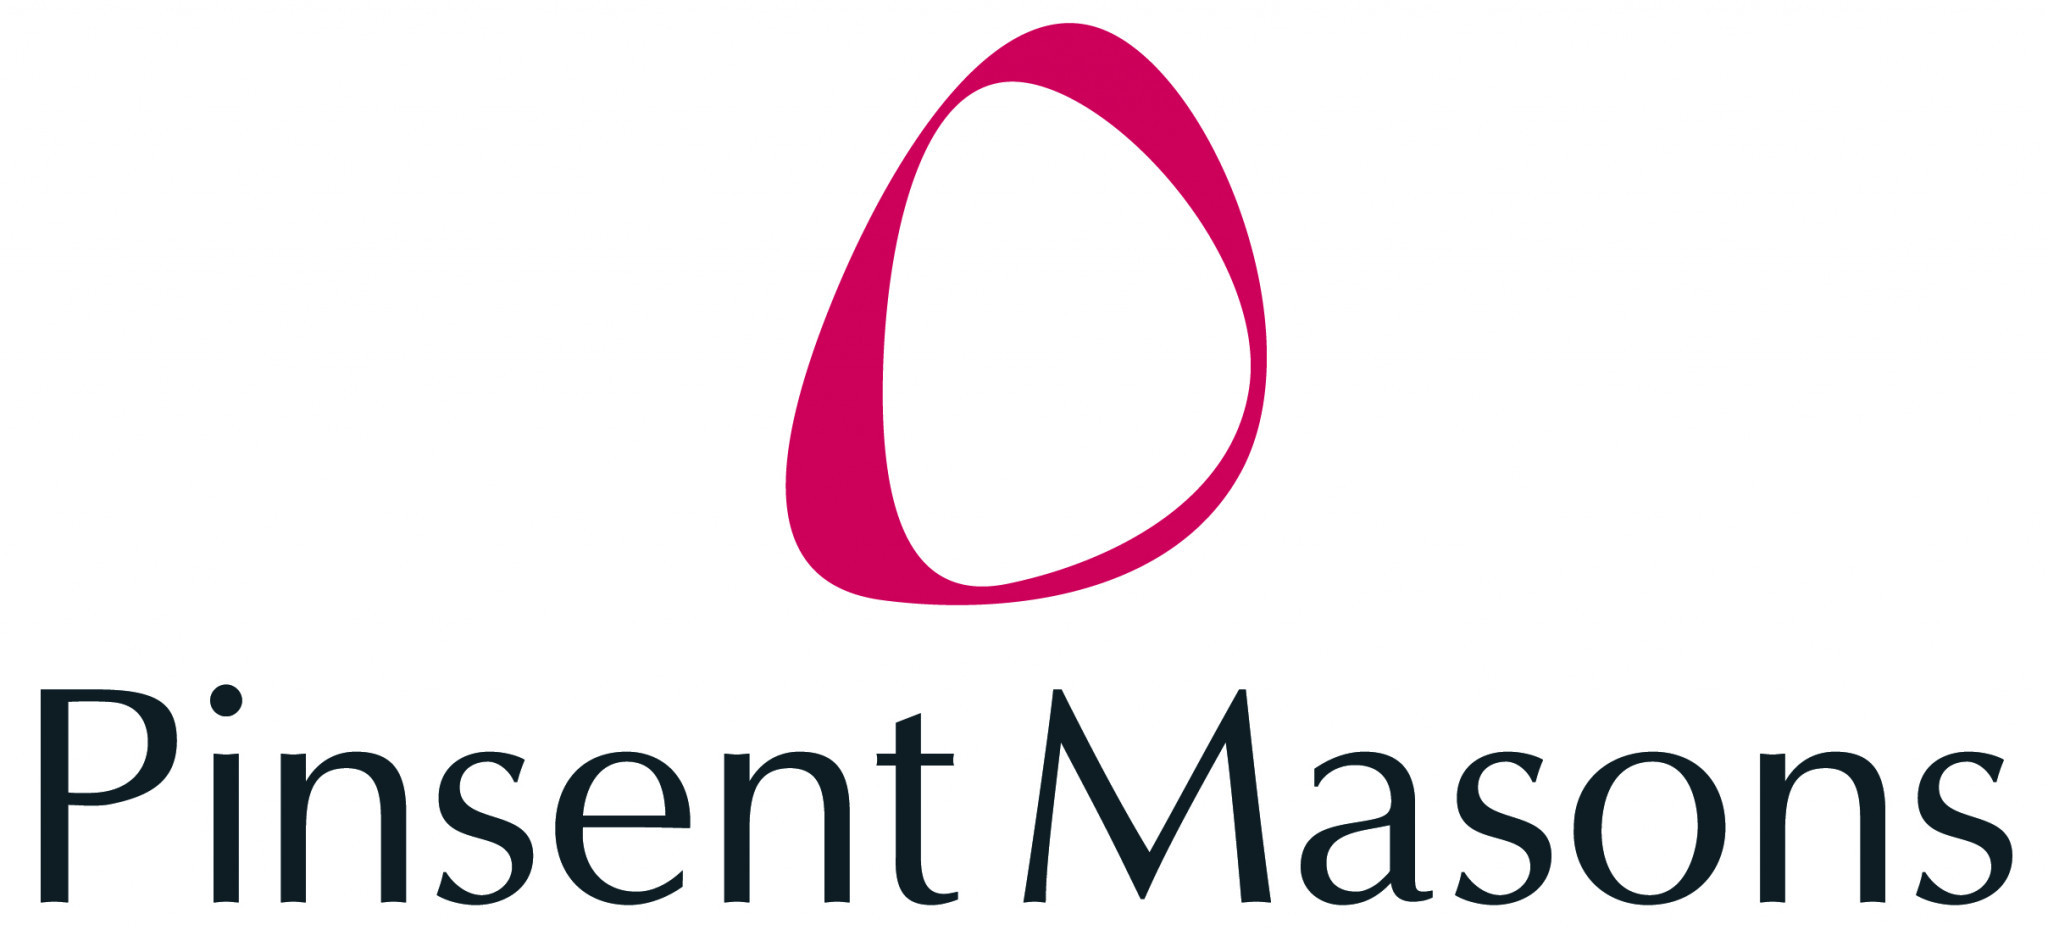 World Athletics signs Pinsent Masons as official supplier of legal services